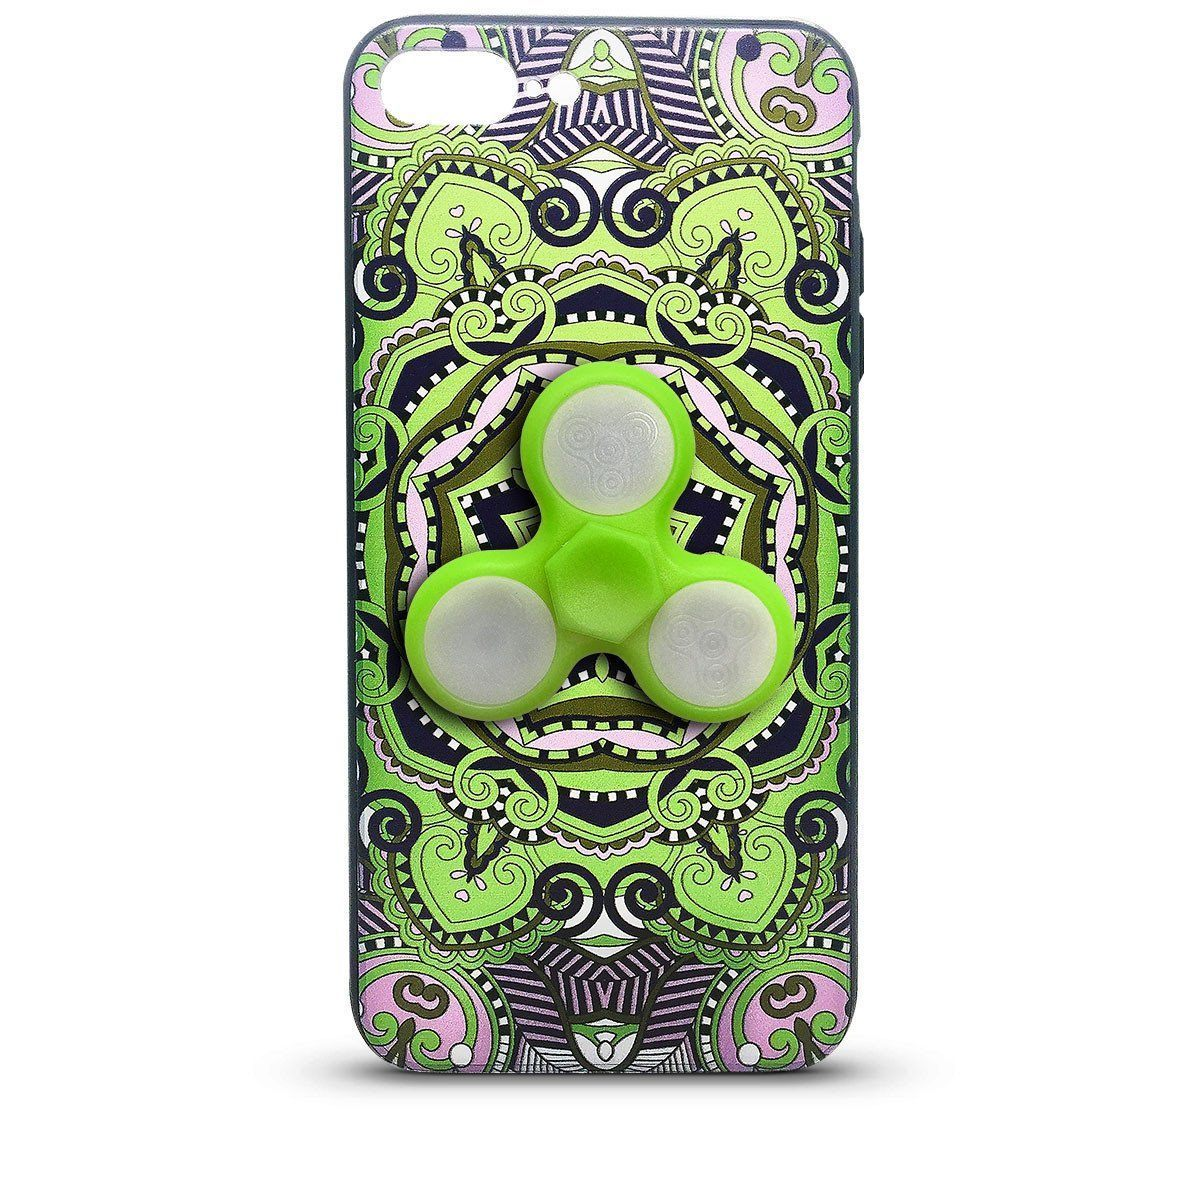 Fidget Case for iPhone 6 - Green